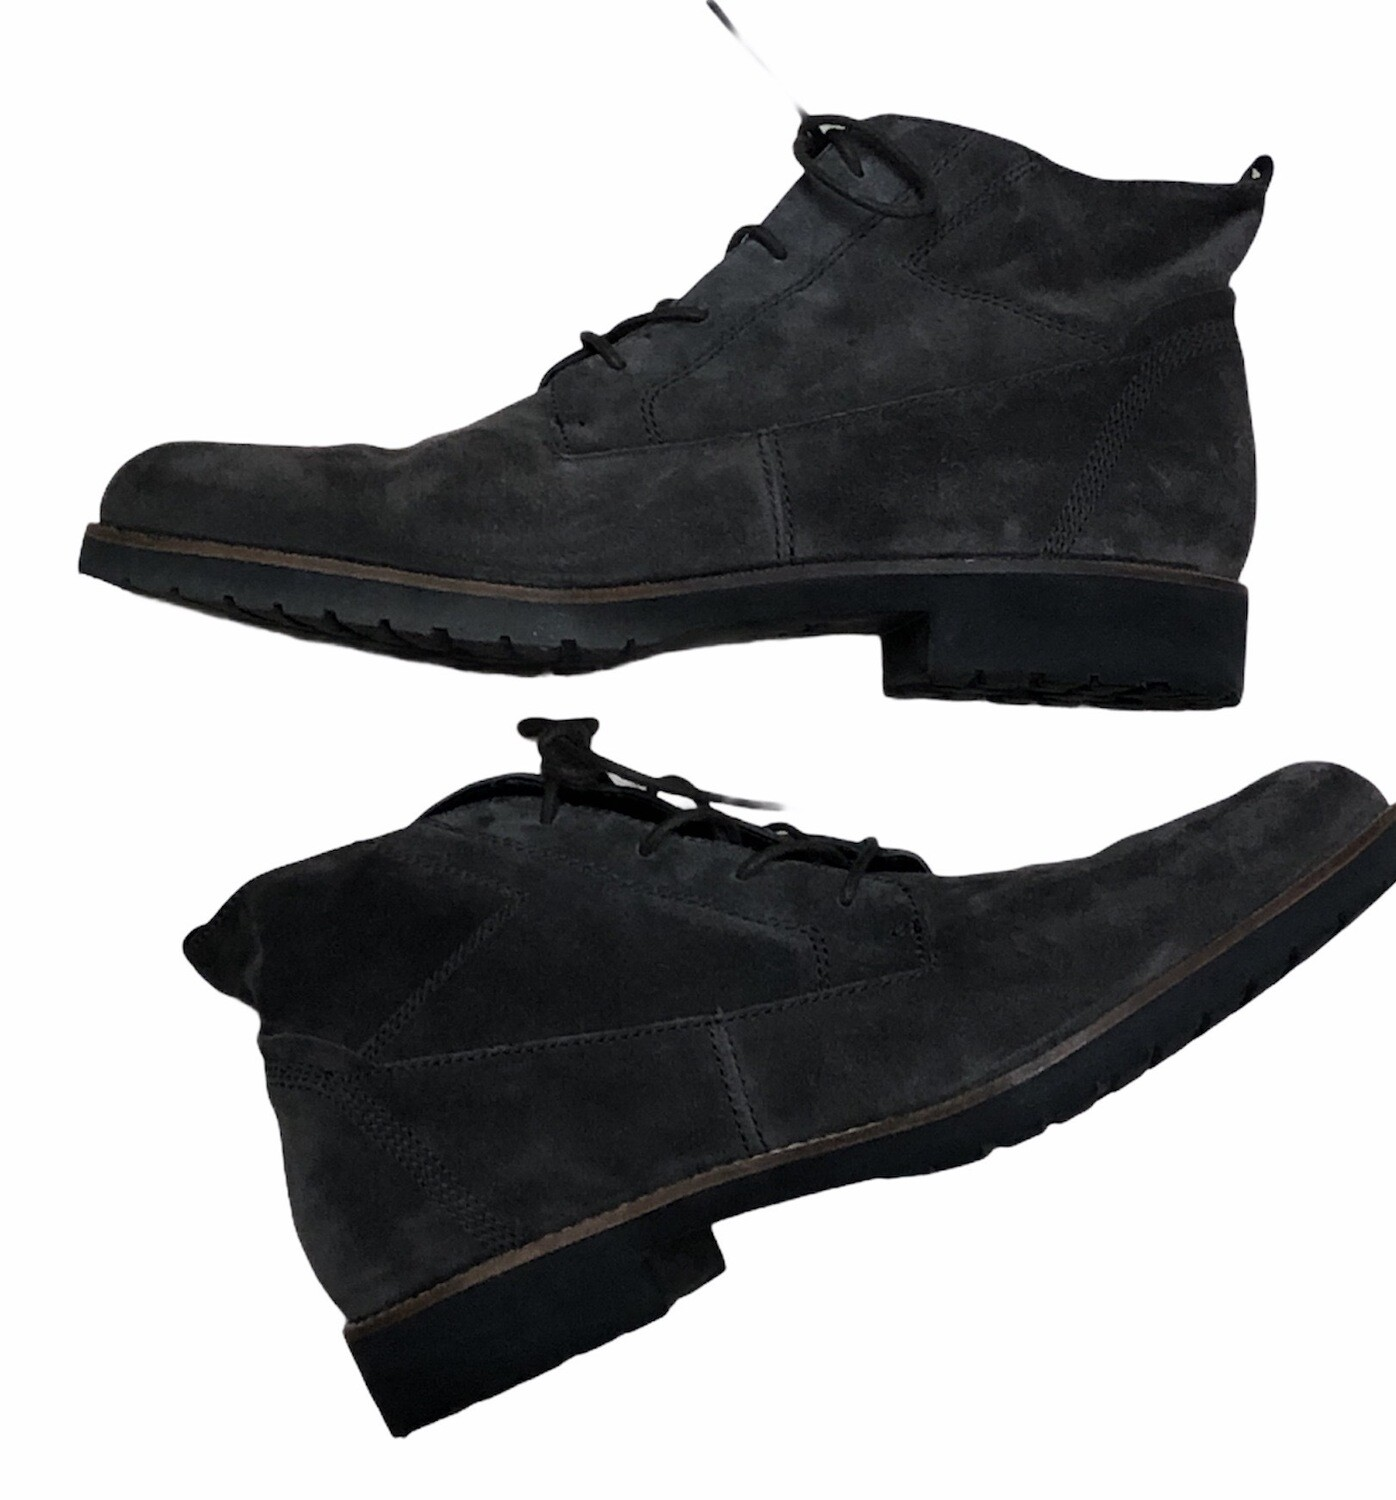 FRANCO SARTO Civic Grey Suede Chukka Lace-Up Boots size 10 $149